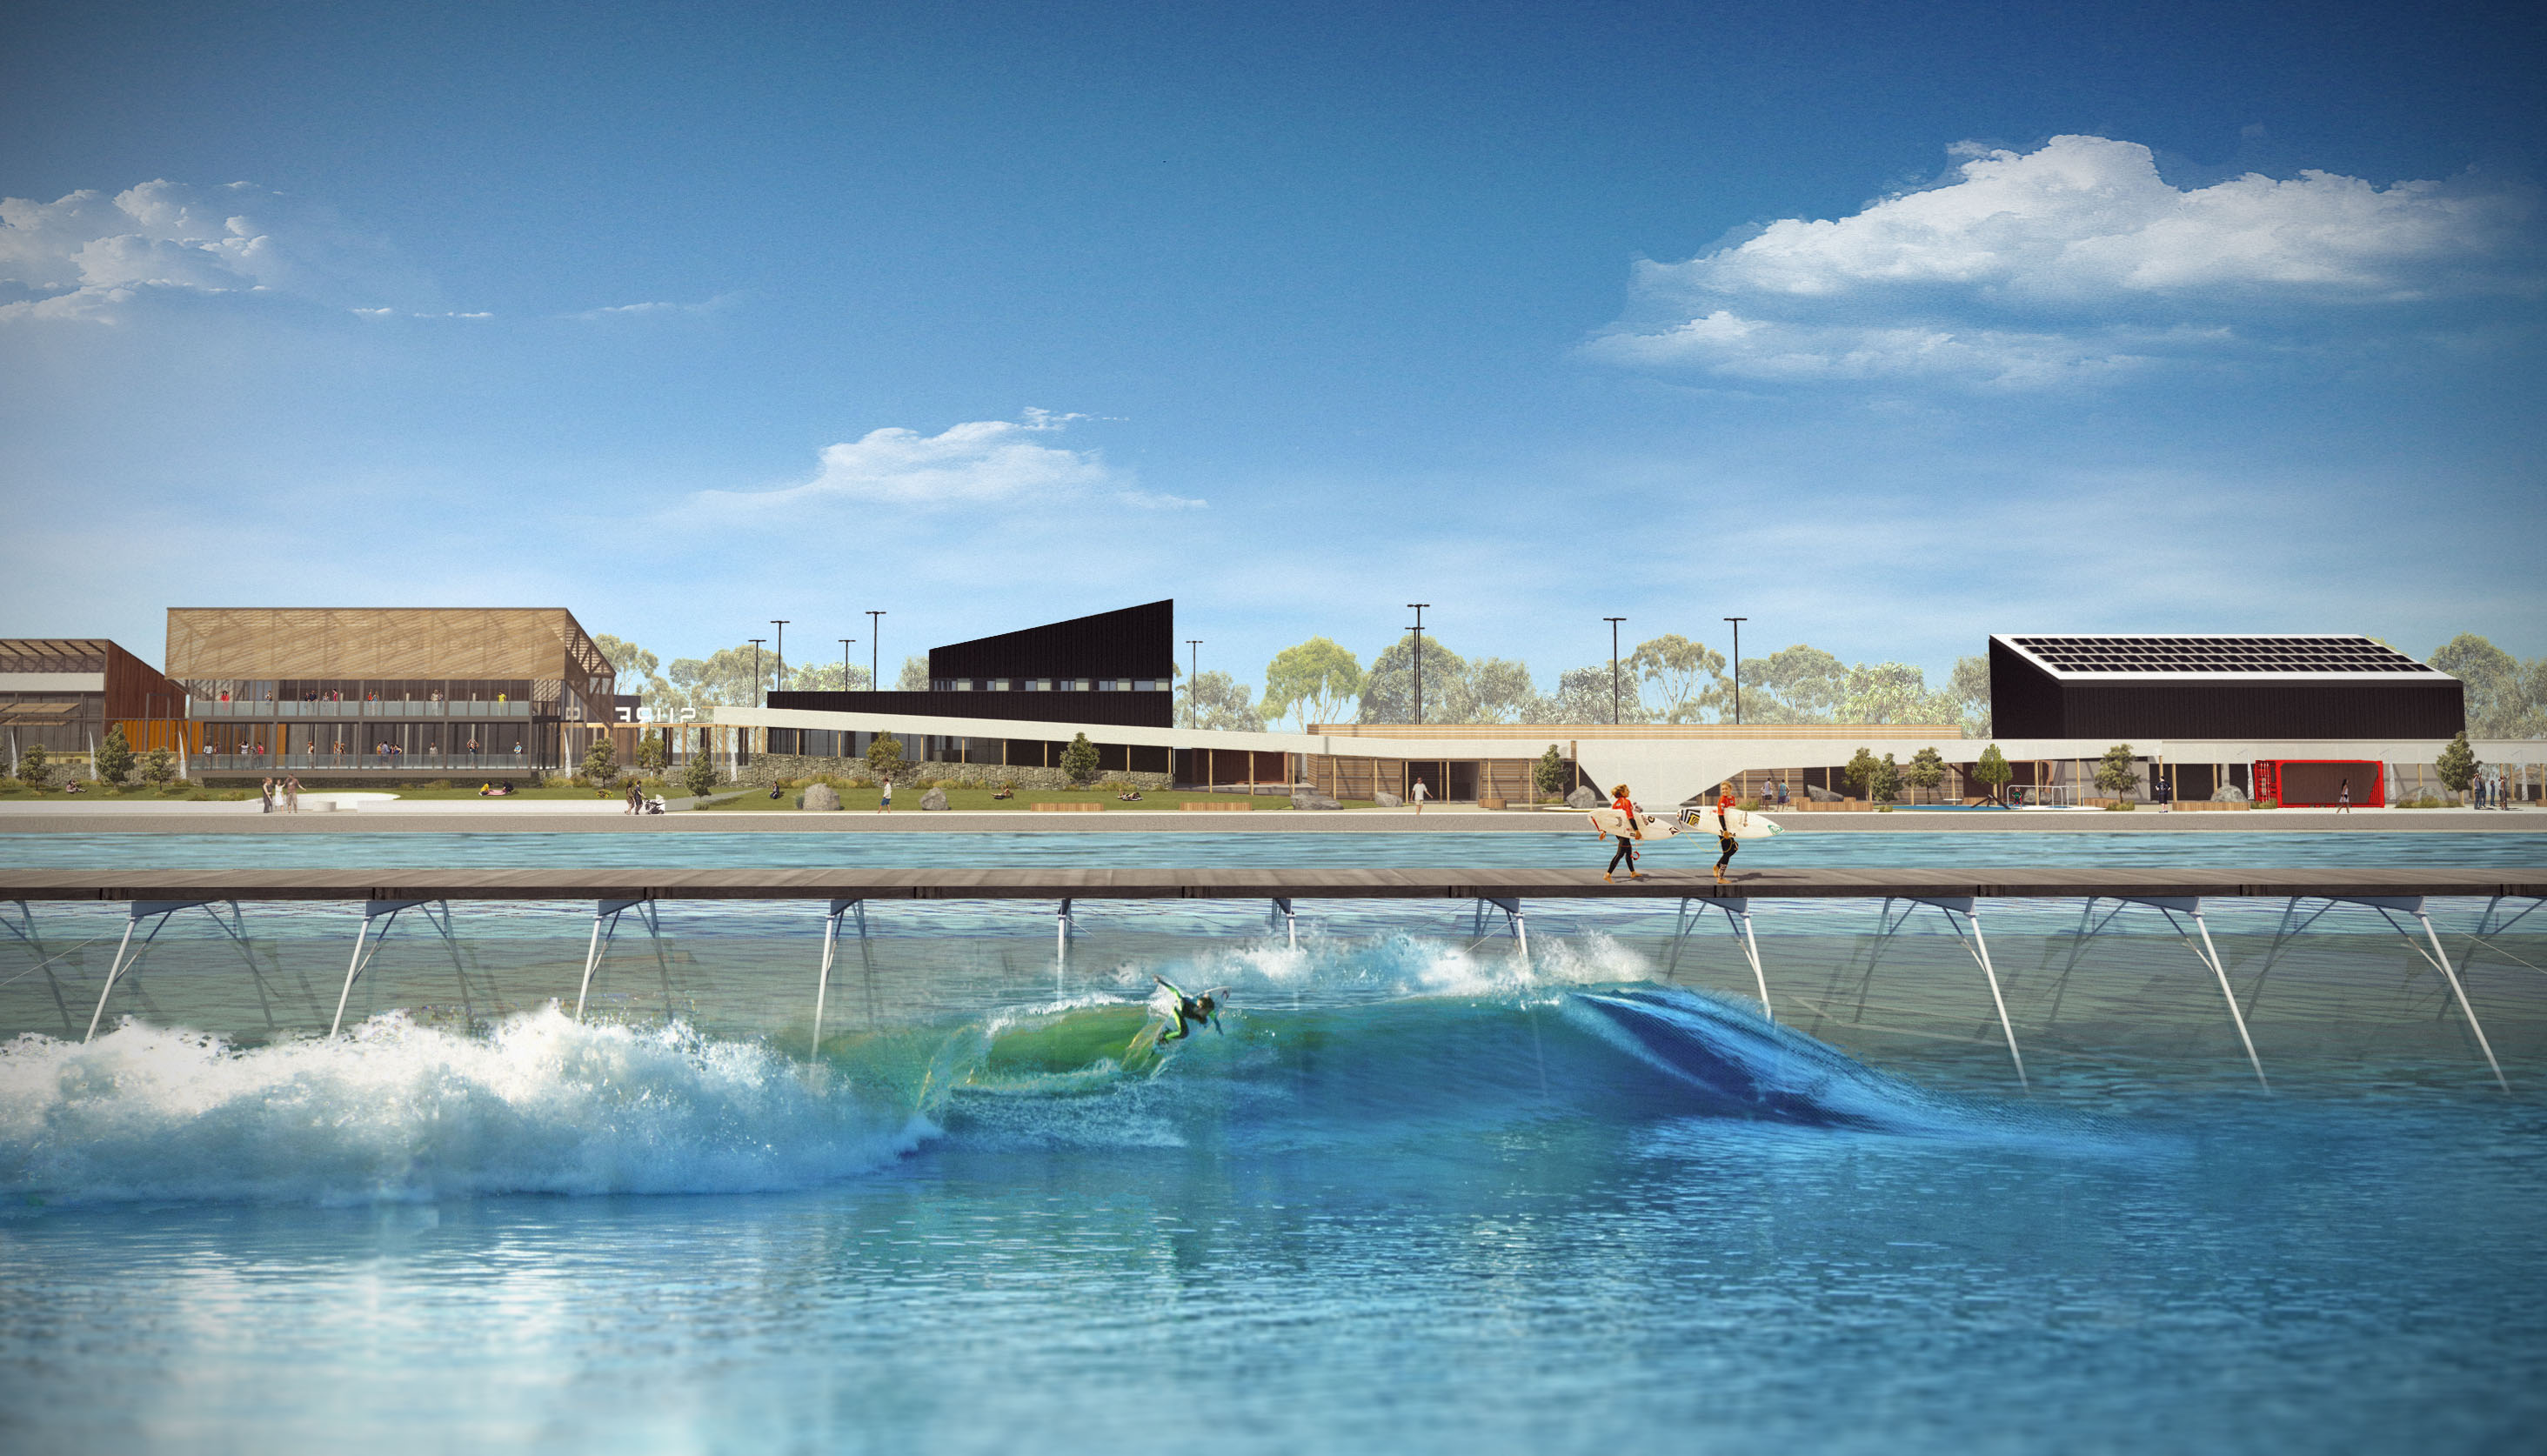 pics URBNsurf Melbourne: Australias First Ever Man-Made Wave Pool